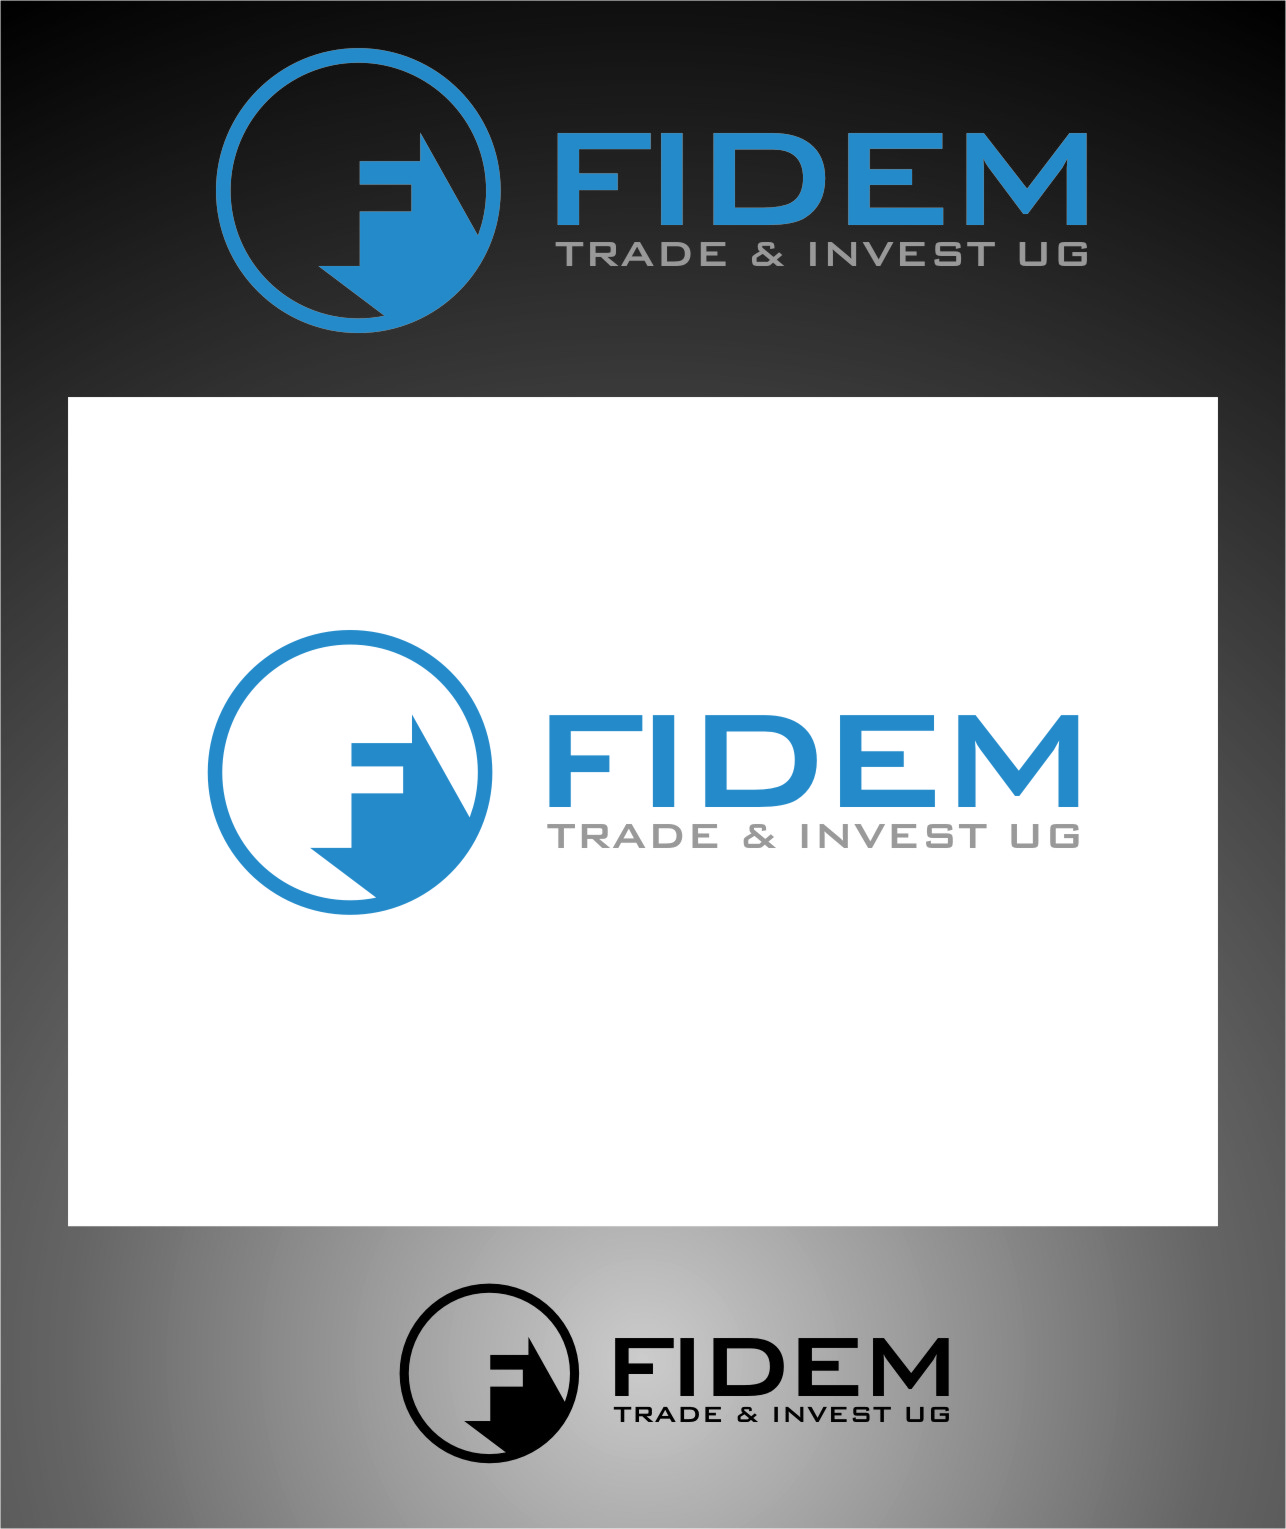 Logo Design by RasYa Muhammad Athaya - Entry No. 337 in the Logo Design Contest Professional Logo Design for FIDEM Trade & Invest UG.